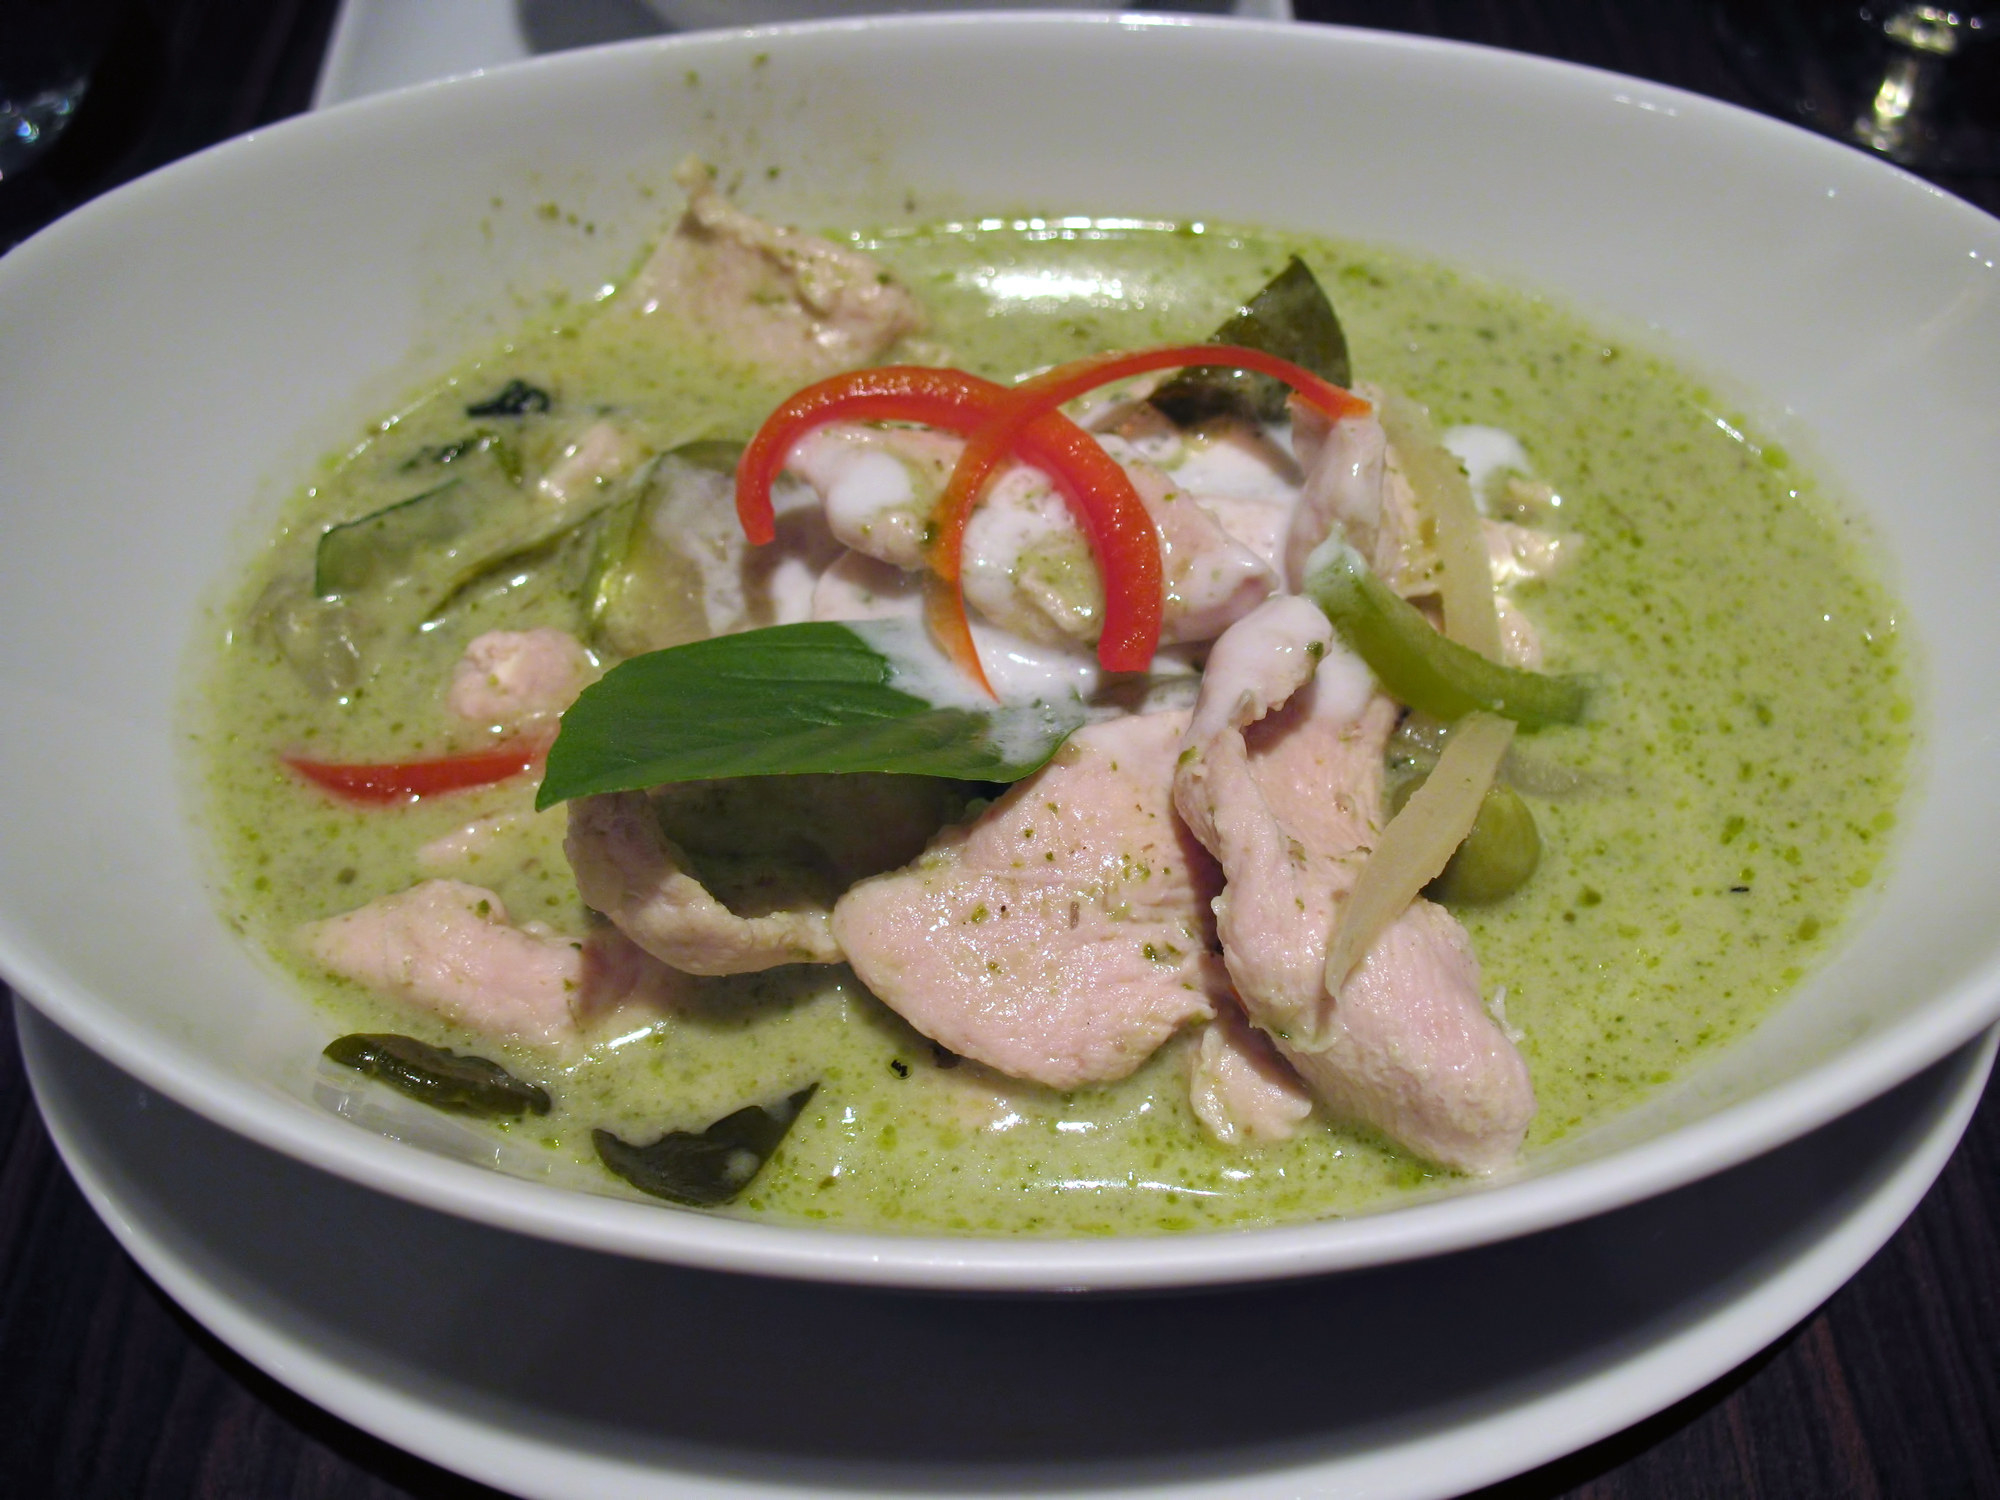 Thai green curry with chicken, pepper, and kaffir lime